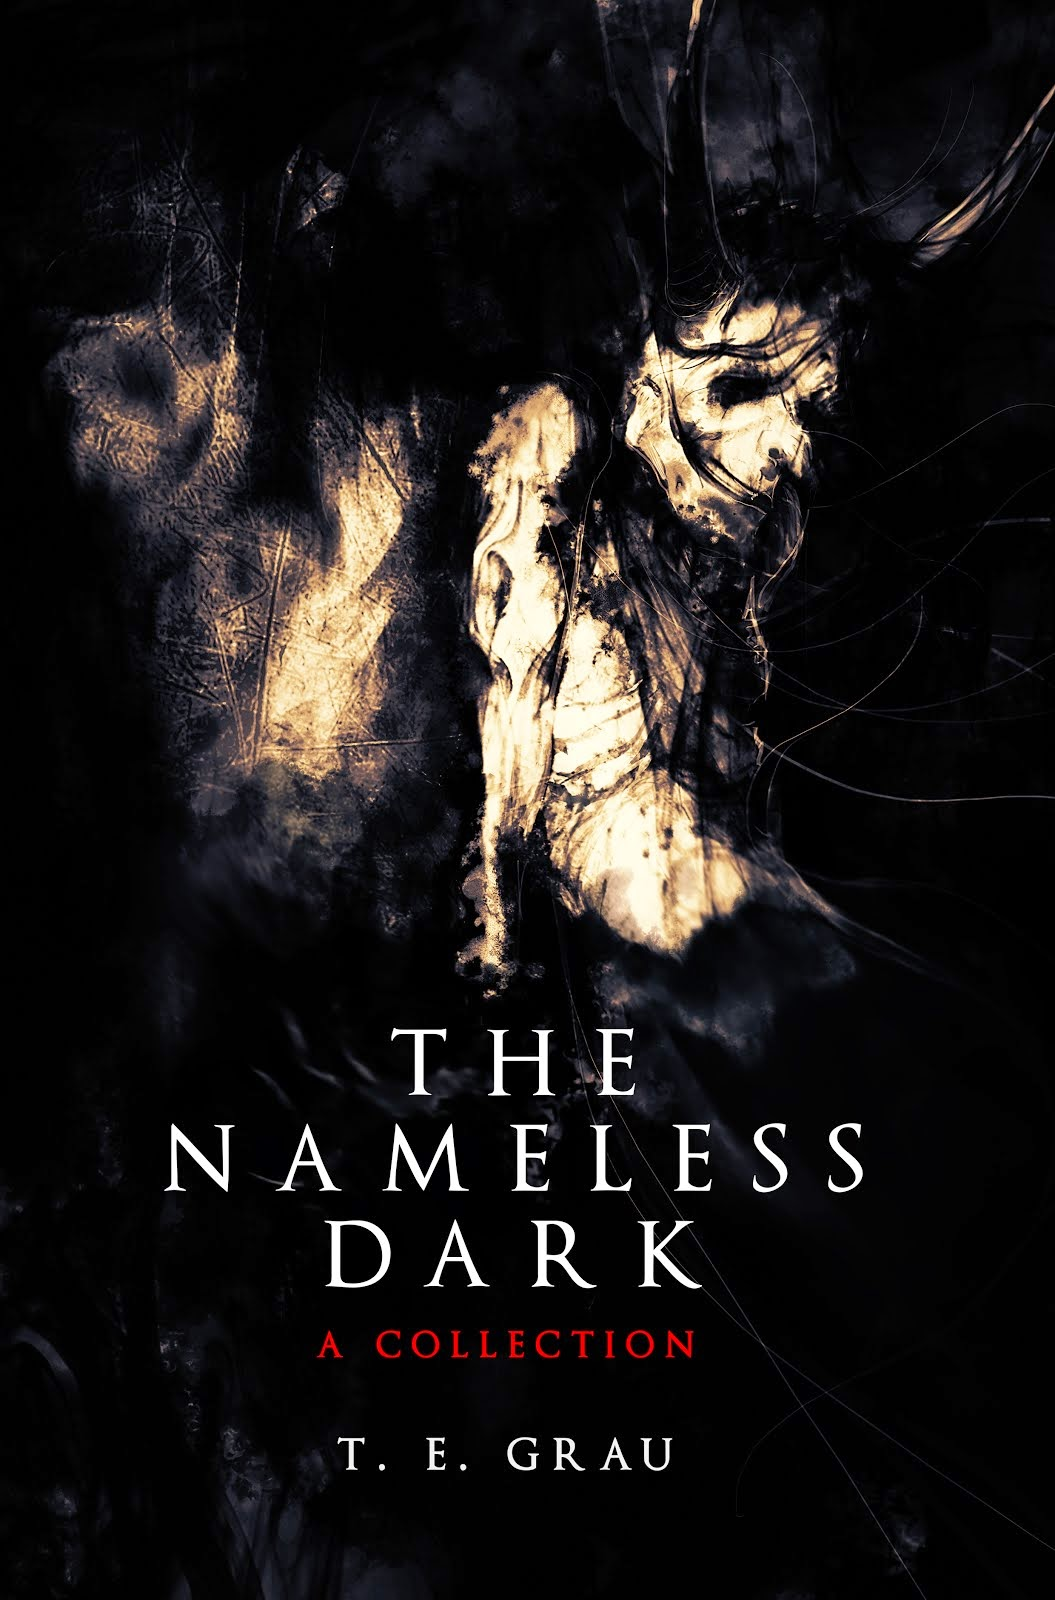 THE NAMELESS DARK - A COLLECTION